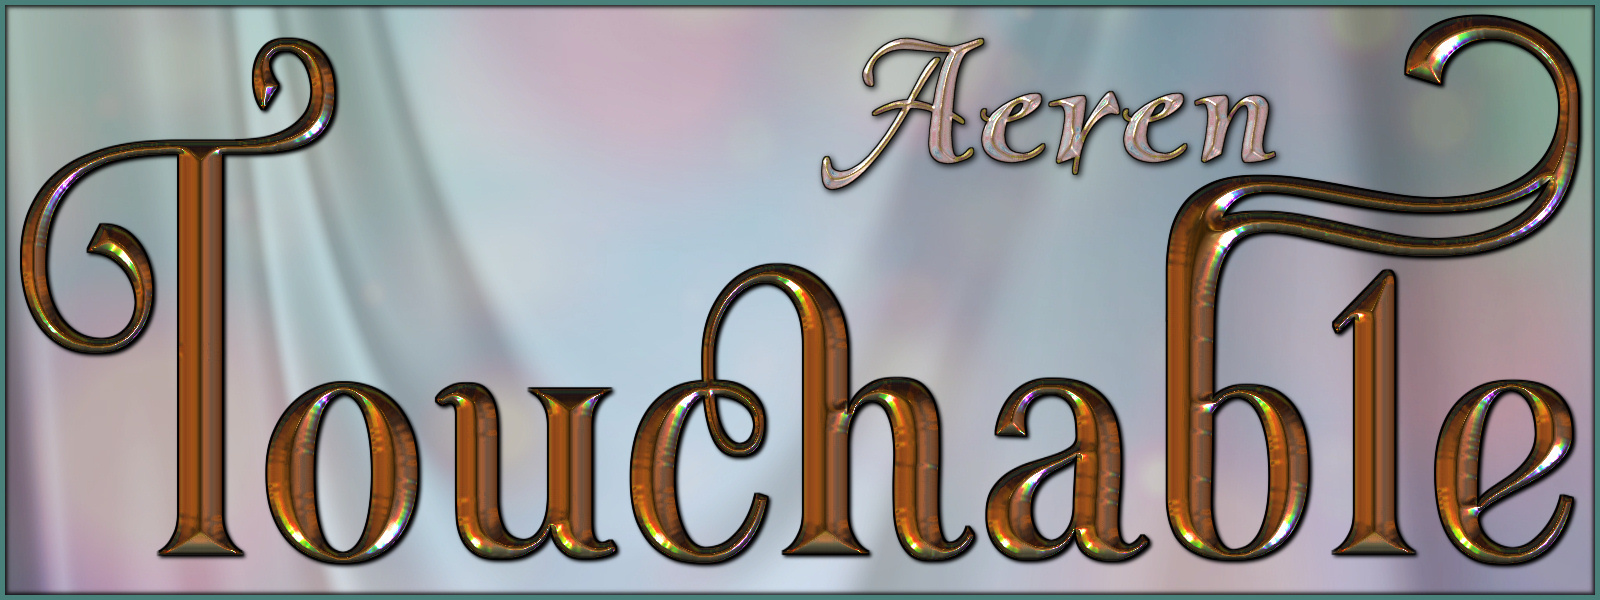 Touchable Aeren by -Wolfie-